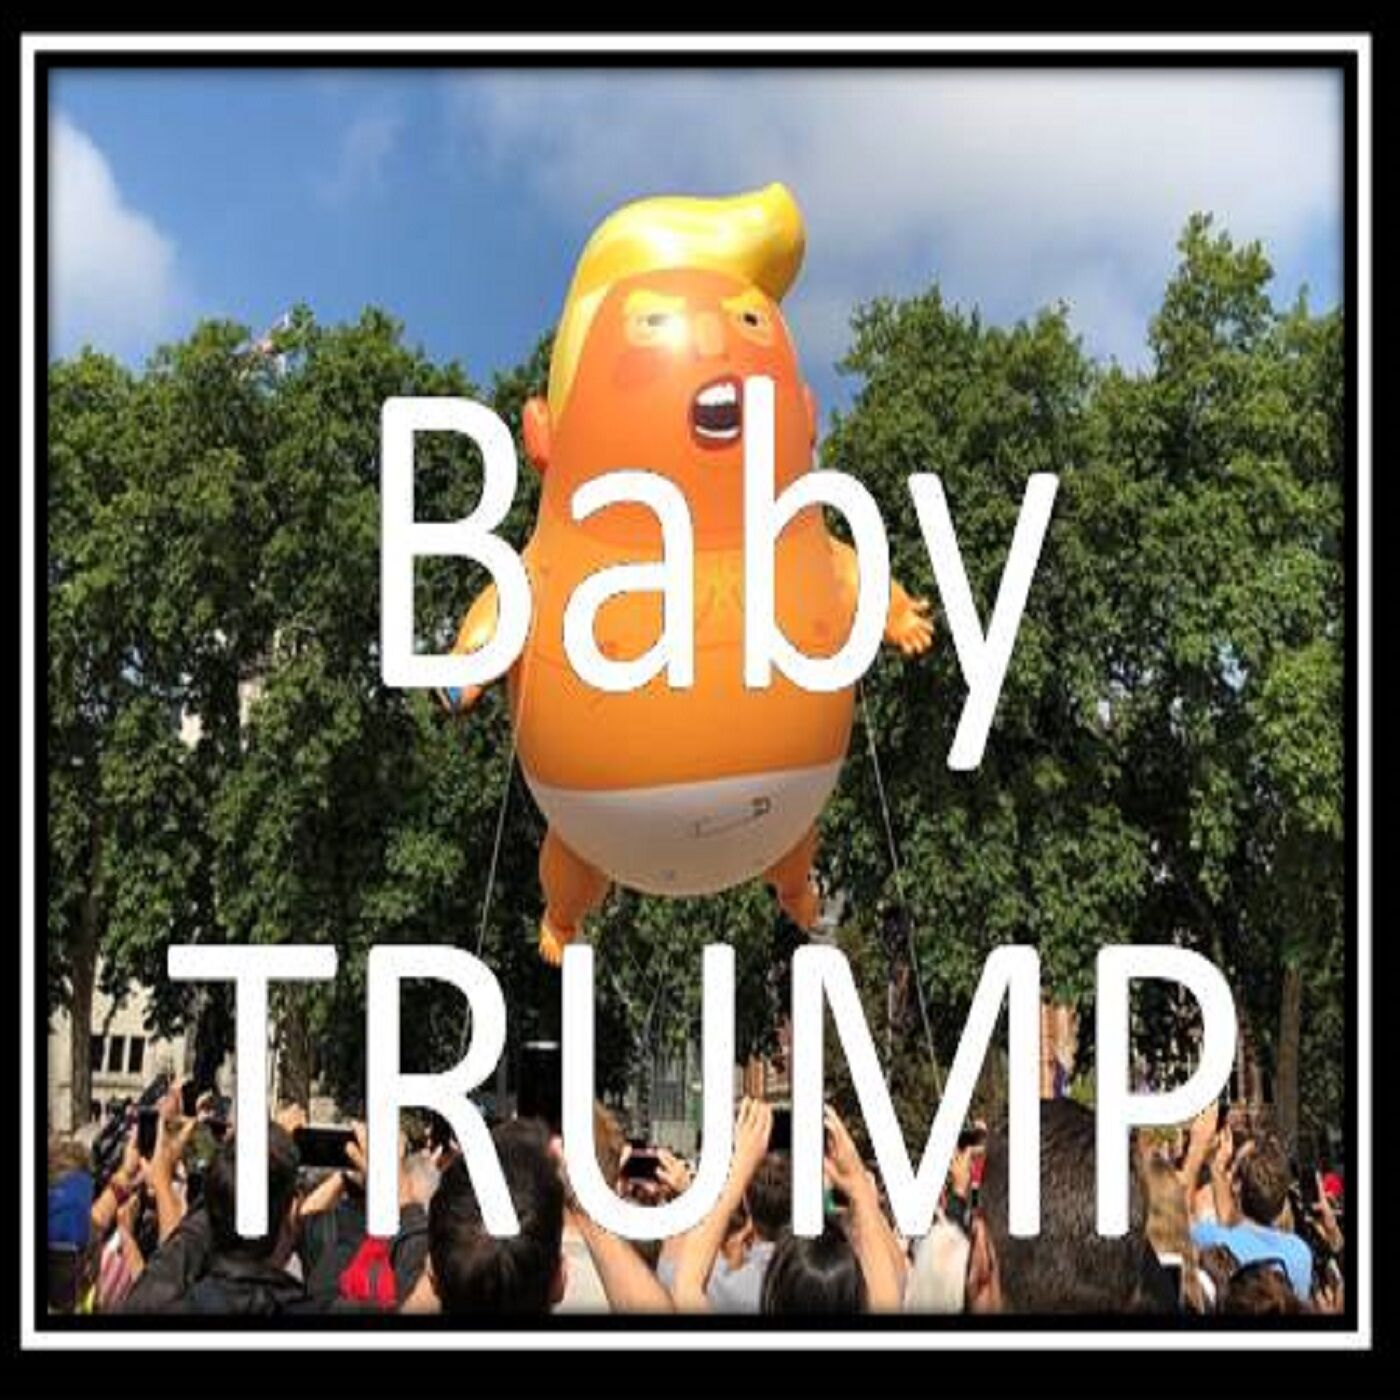 Trump INSULTS EVERY MAN ON THE PLANET BY SAYING HE IS A MAN! Don the con is a fake baby bone spur scaredy cat clan leader.